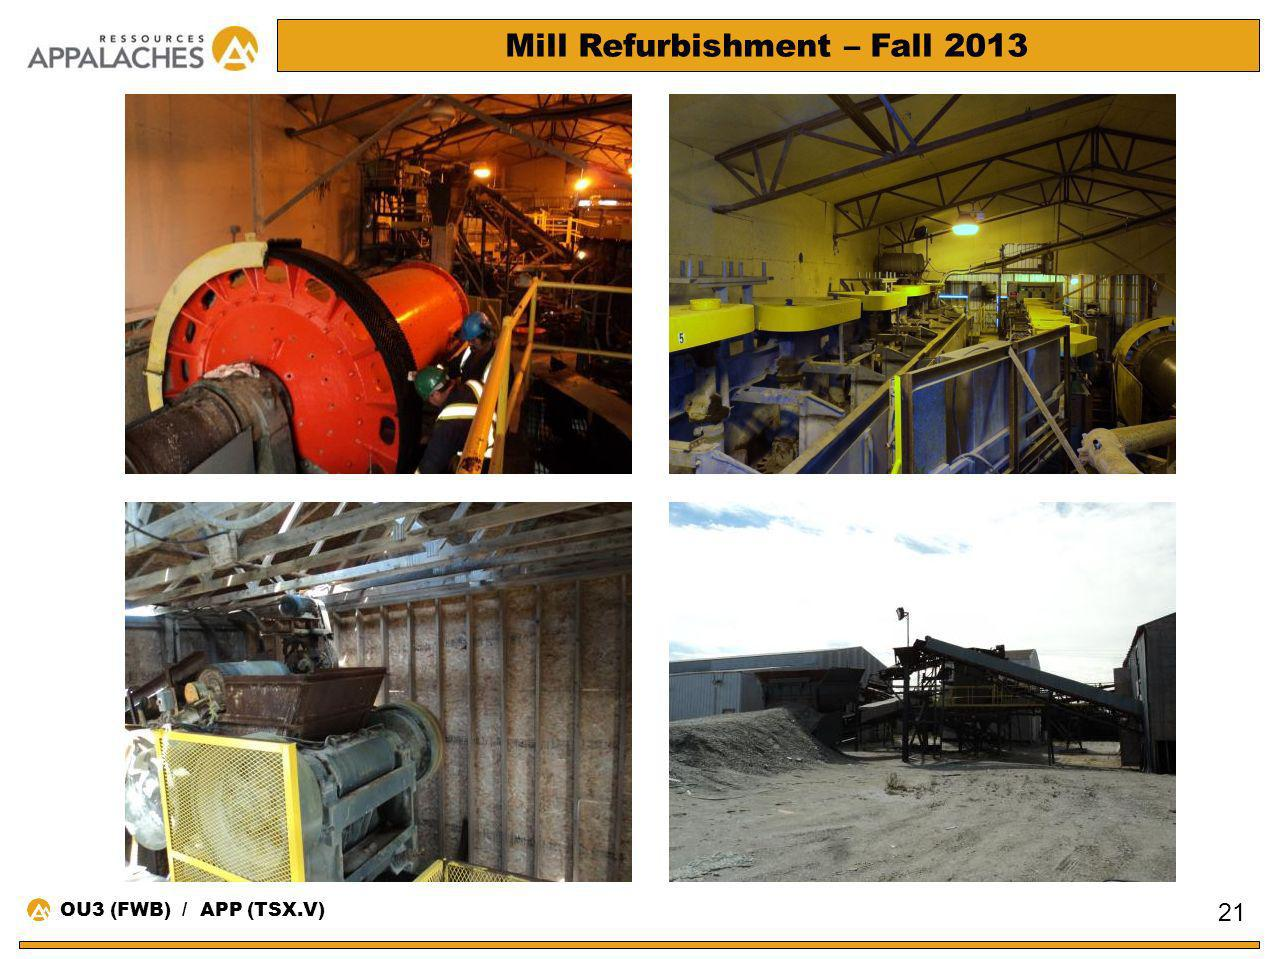 Mill Refurbishment – Fall 2013